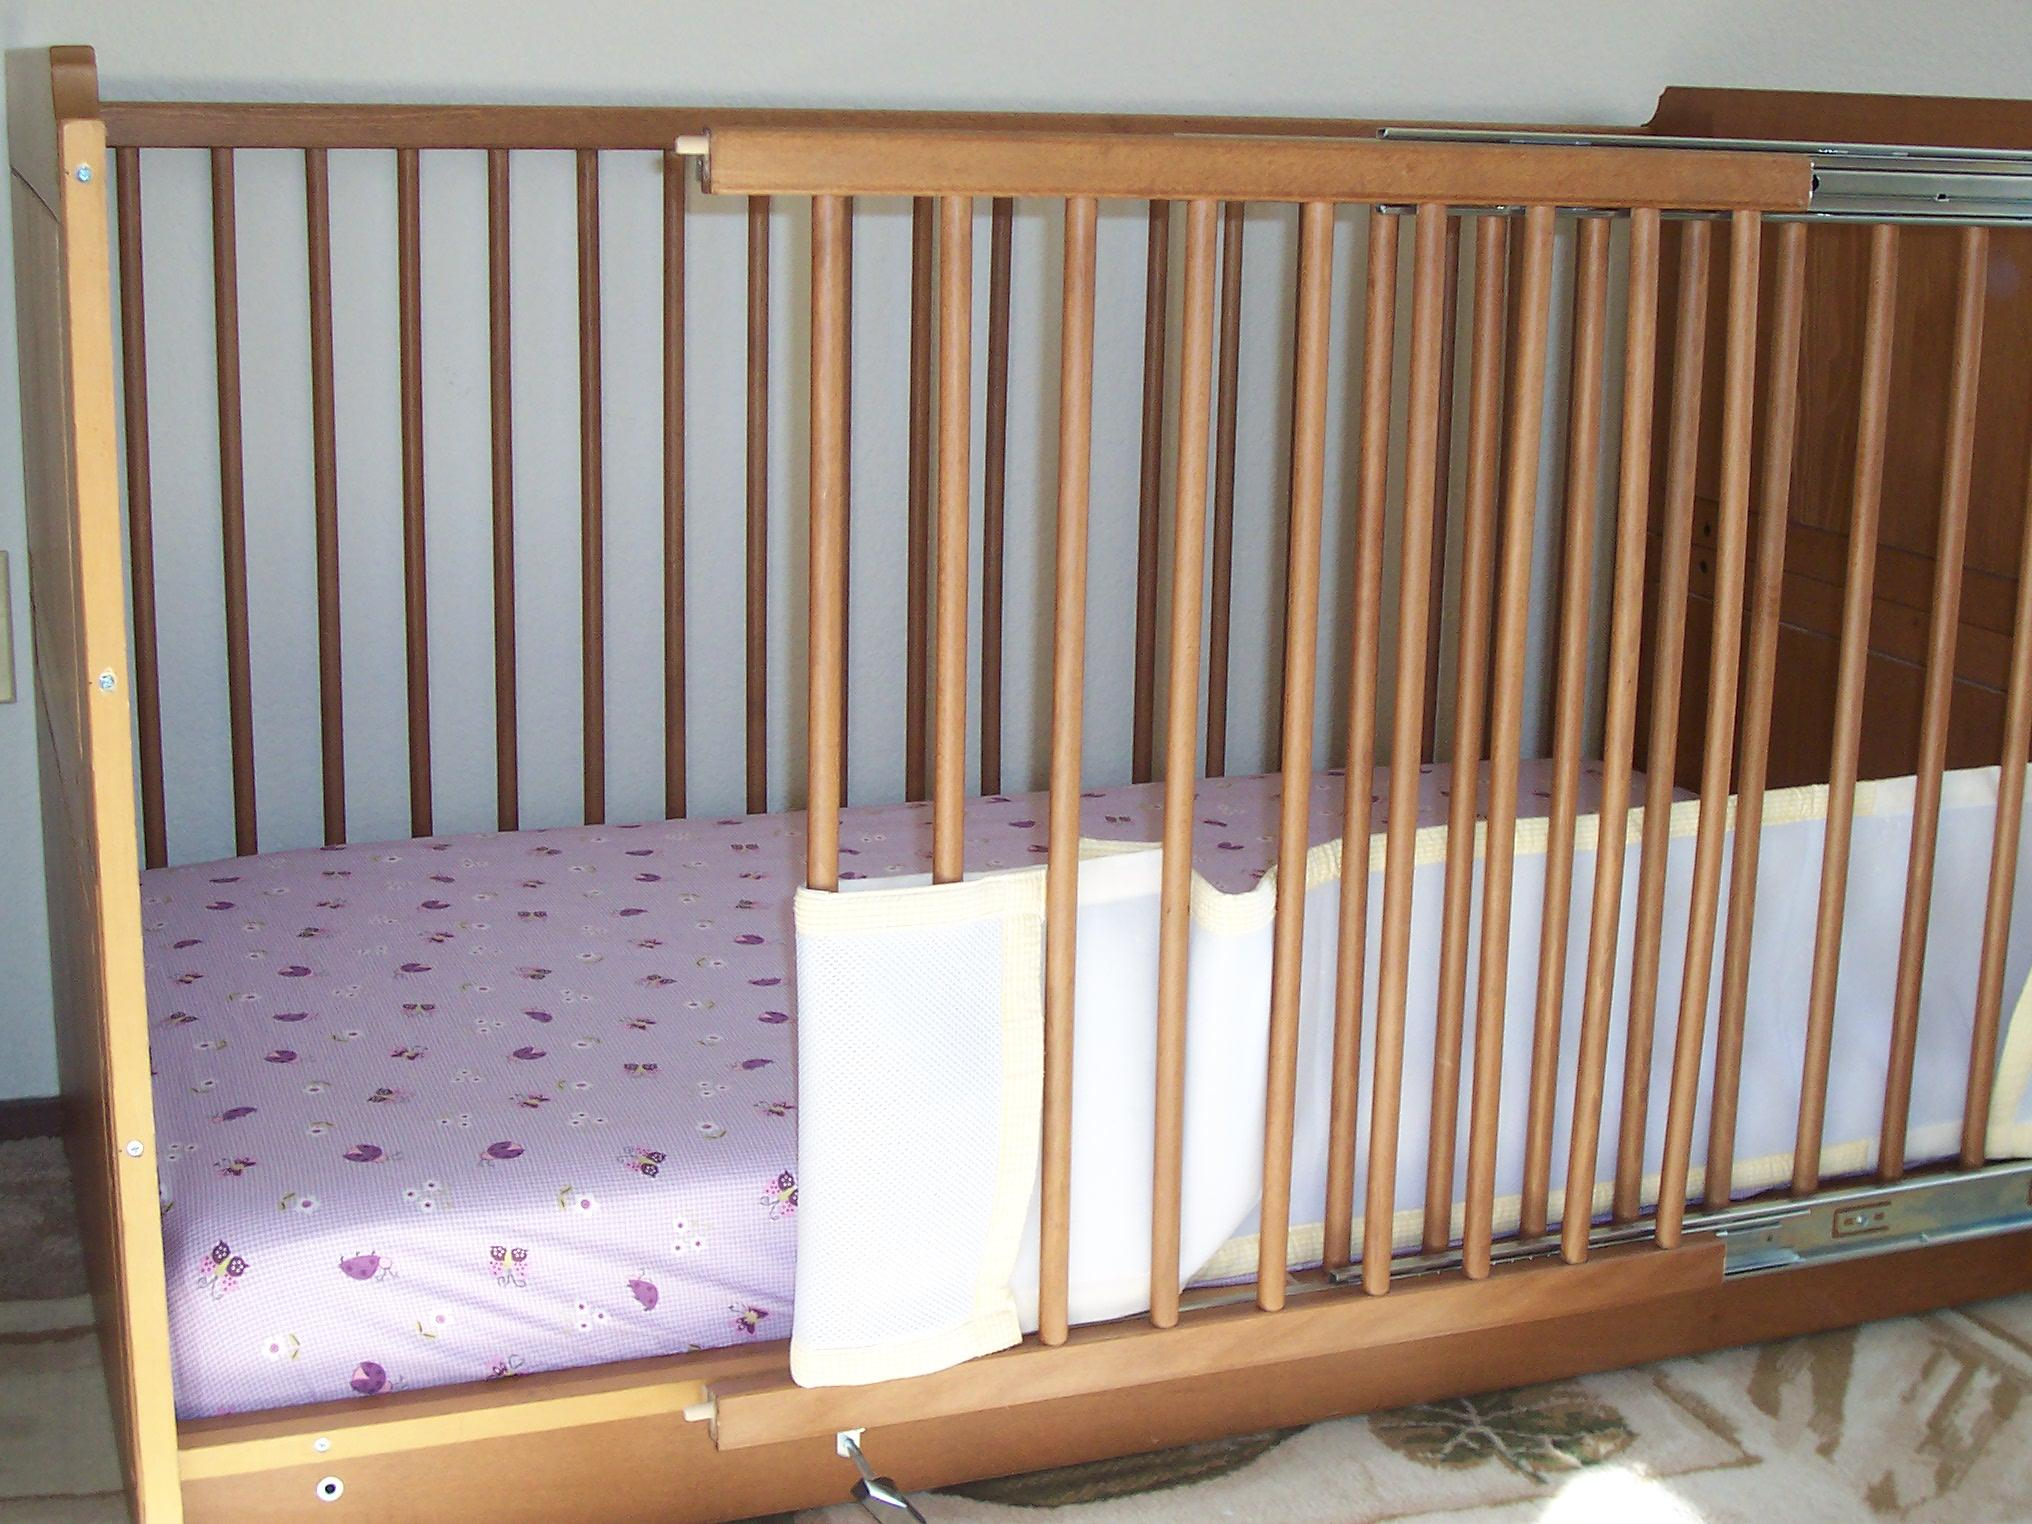 Baby bed hooks to parents bed - Baby Bed Hooks To Parents Bed 25